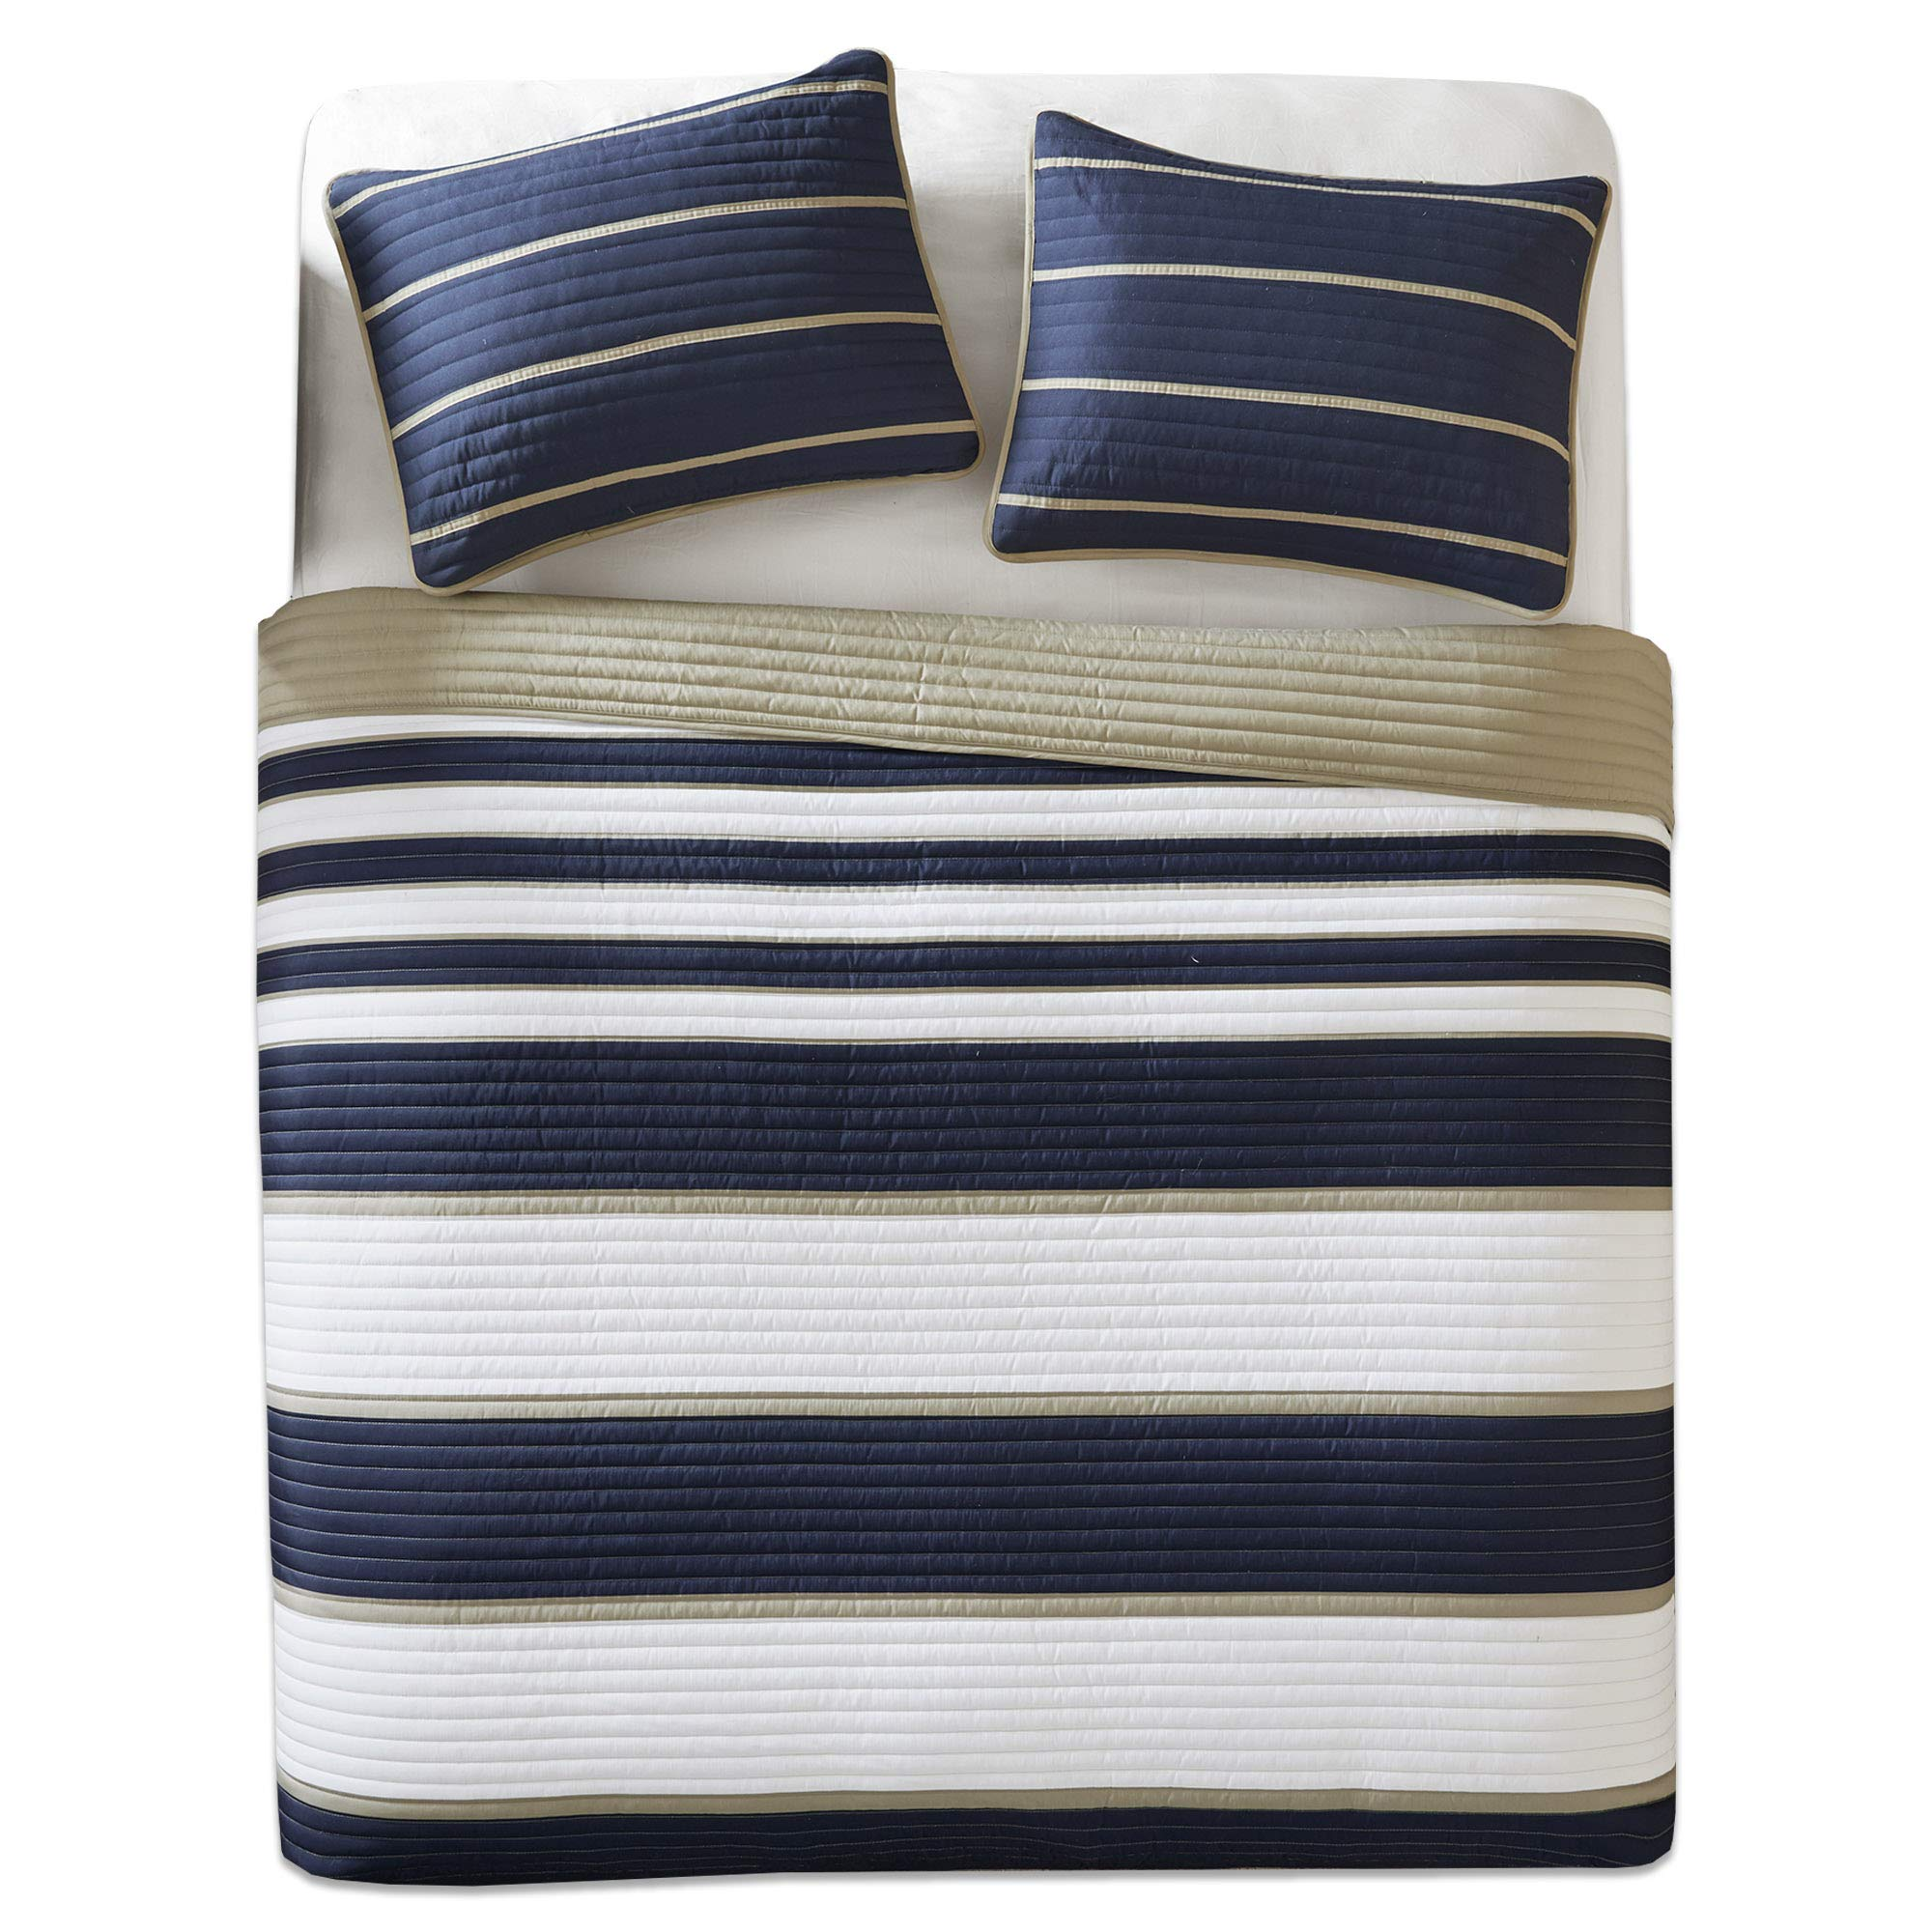 Comfort Spaces - Verone Mini Quilt Coverlet Set - 3 Piece - Navy, White, Khaki - Stripes Pattern - Full/Queen Size, Includes 1 Quilt, 2 Shams